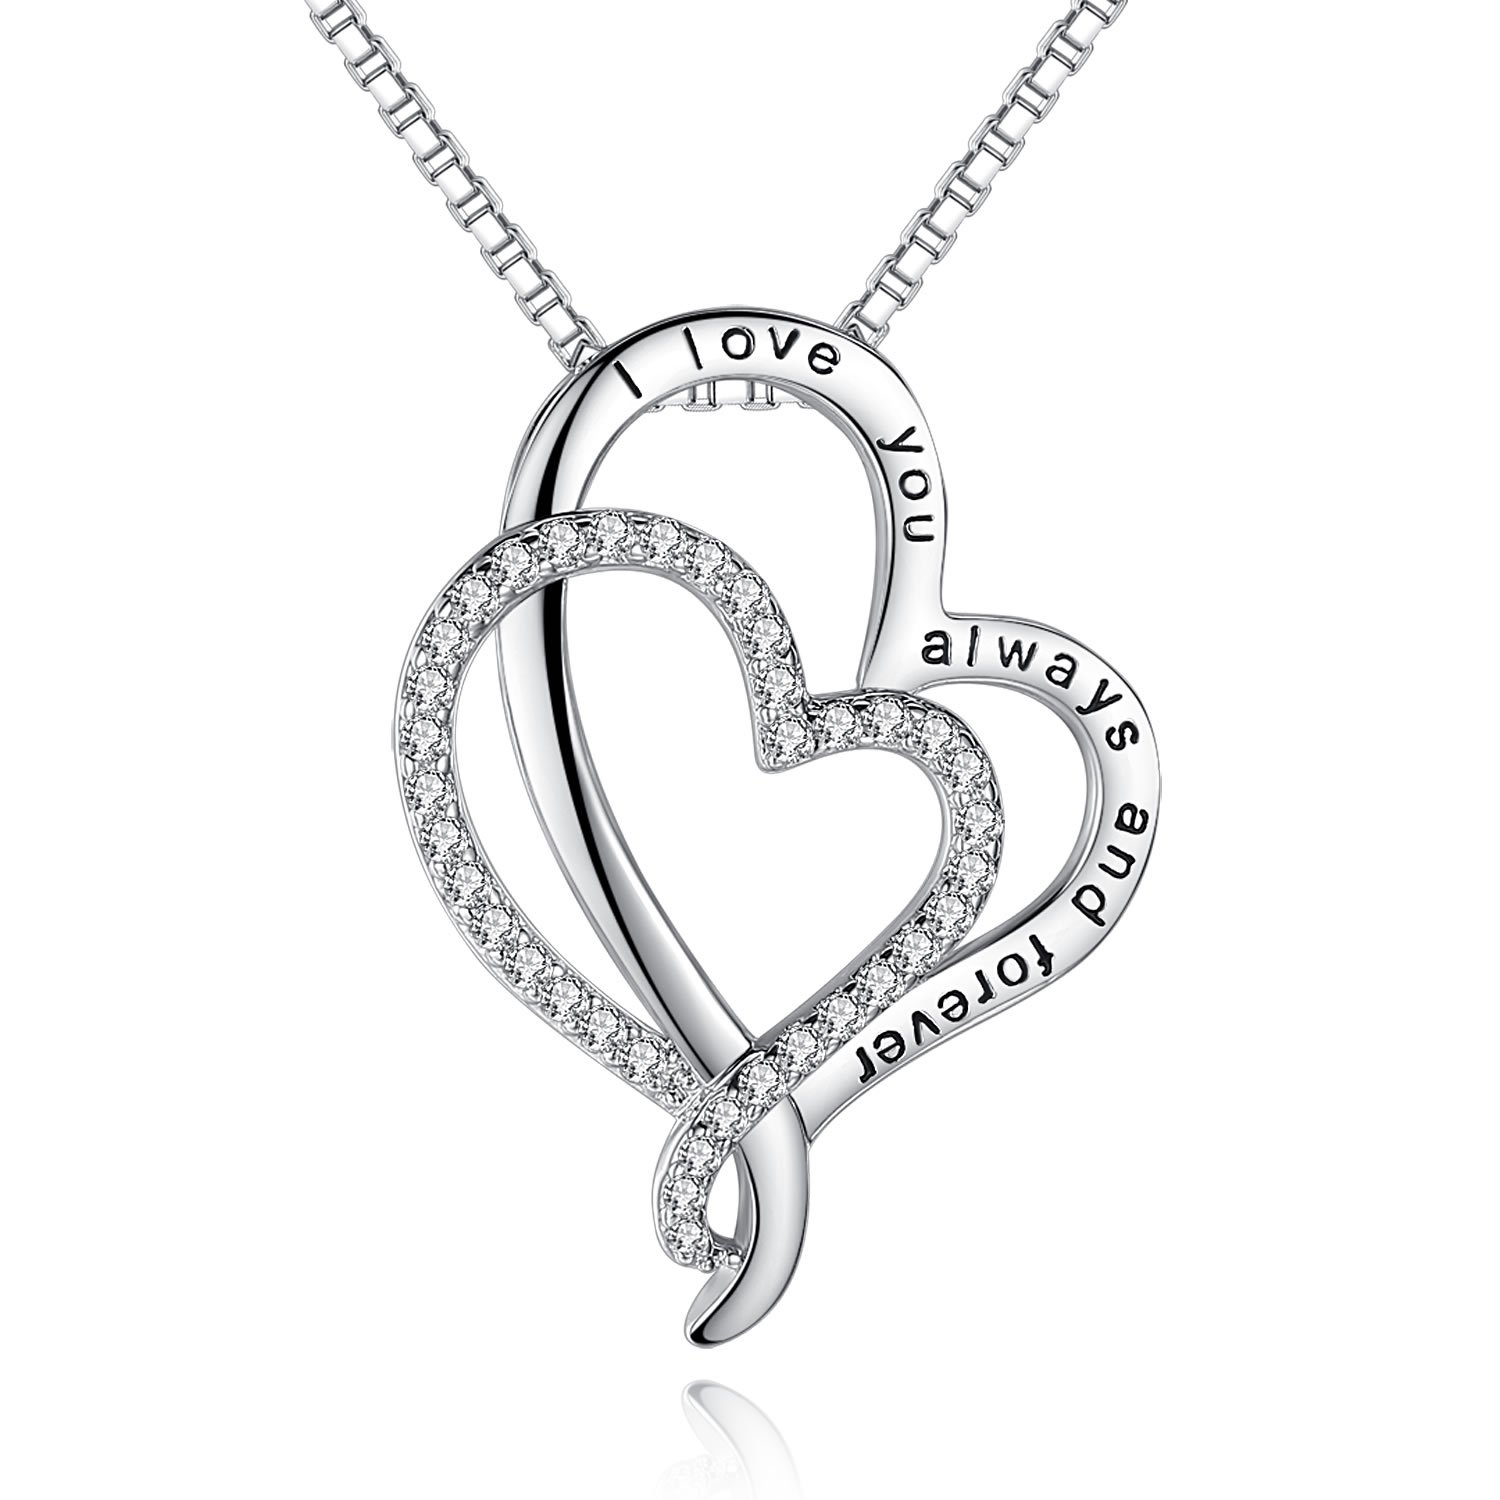 'I Love You To The Moon And Back' Love Heart Necklace Jewelry, Gifts for Women, Lover, Wife, Sweetheart